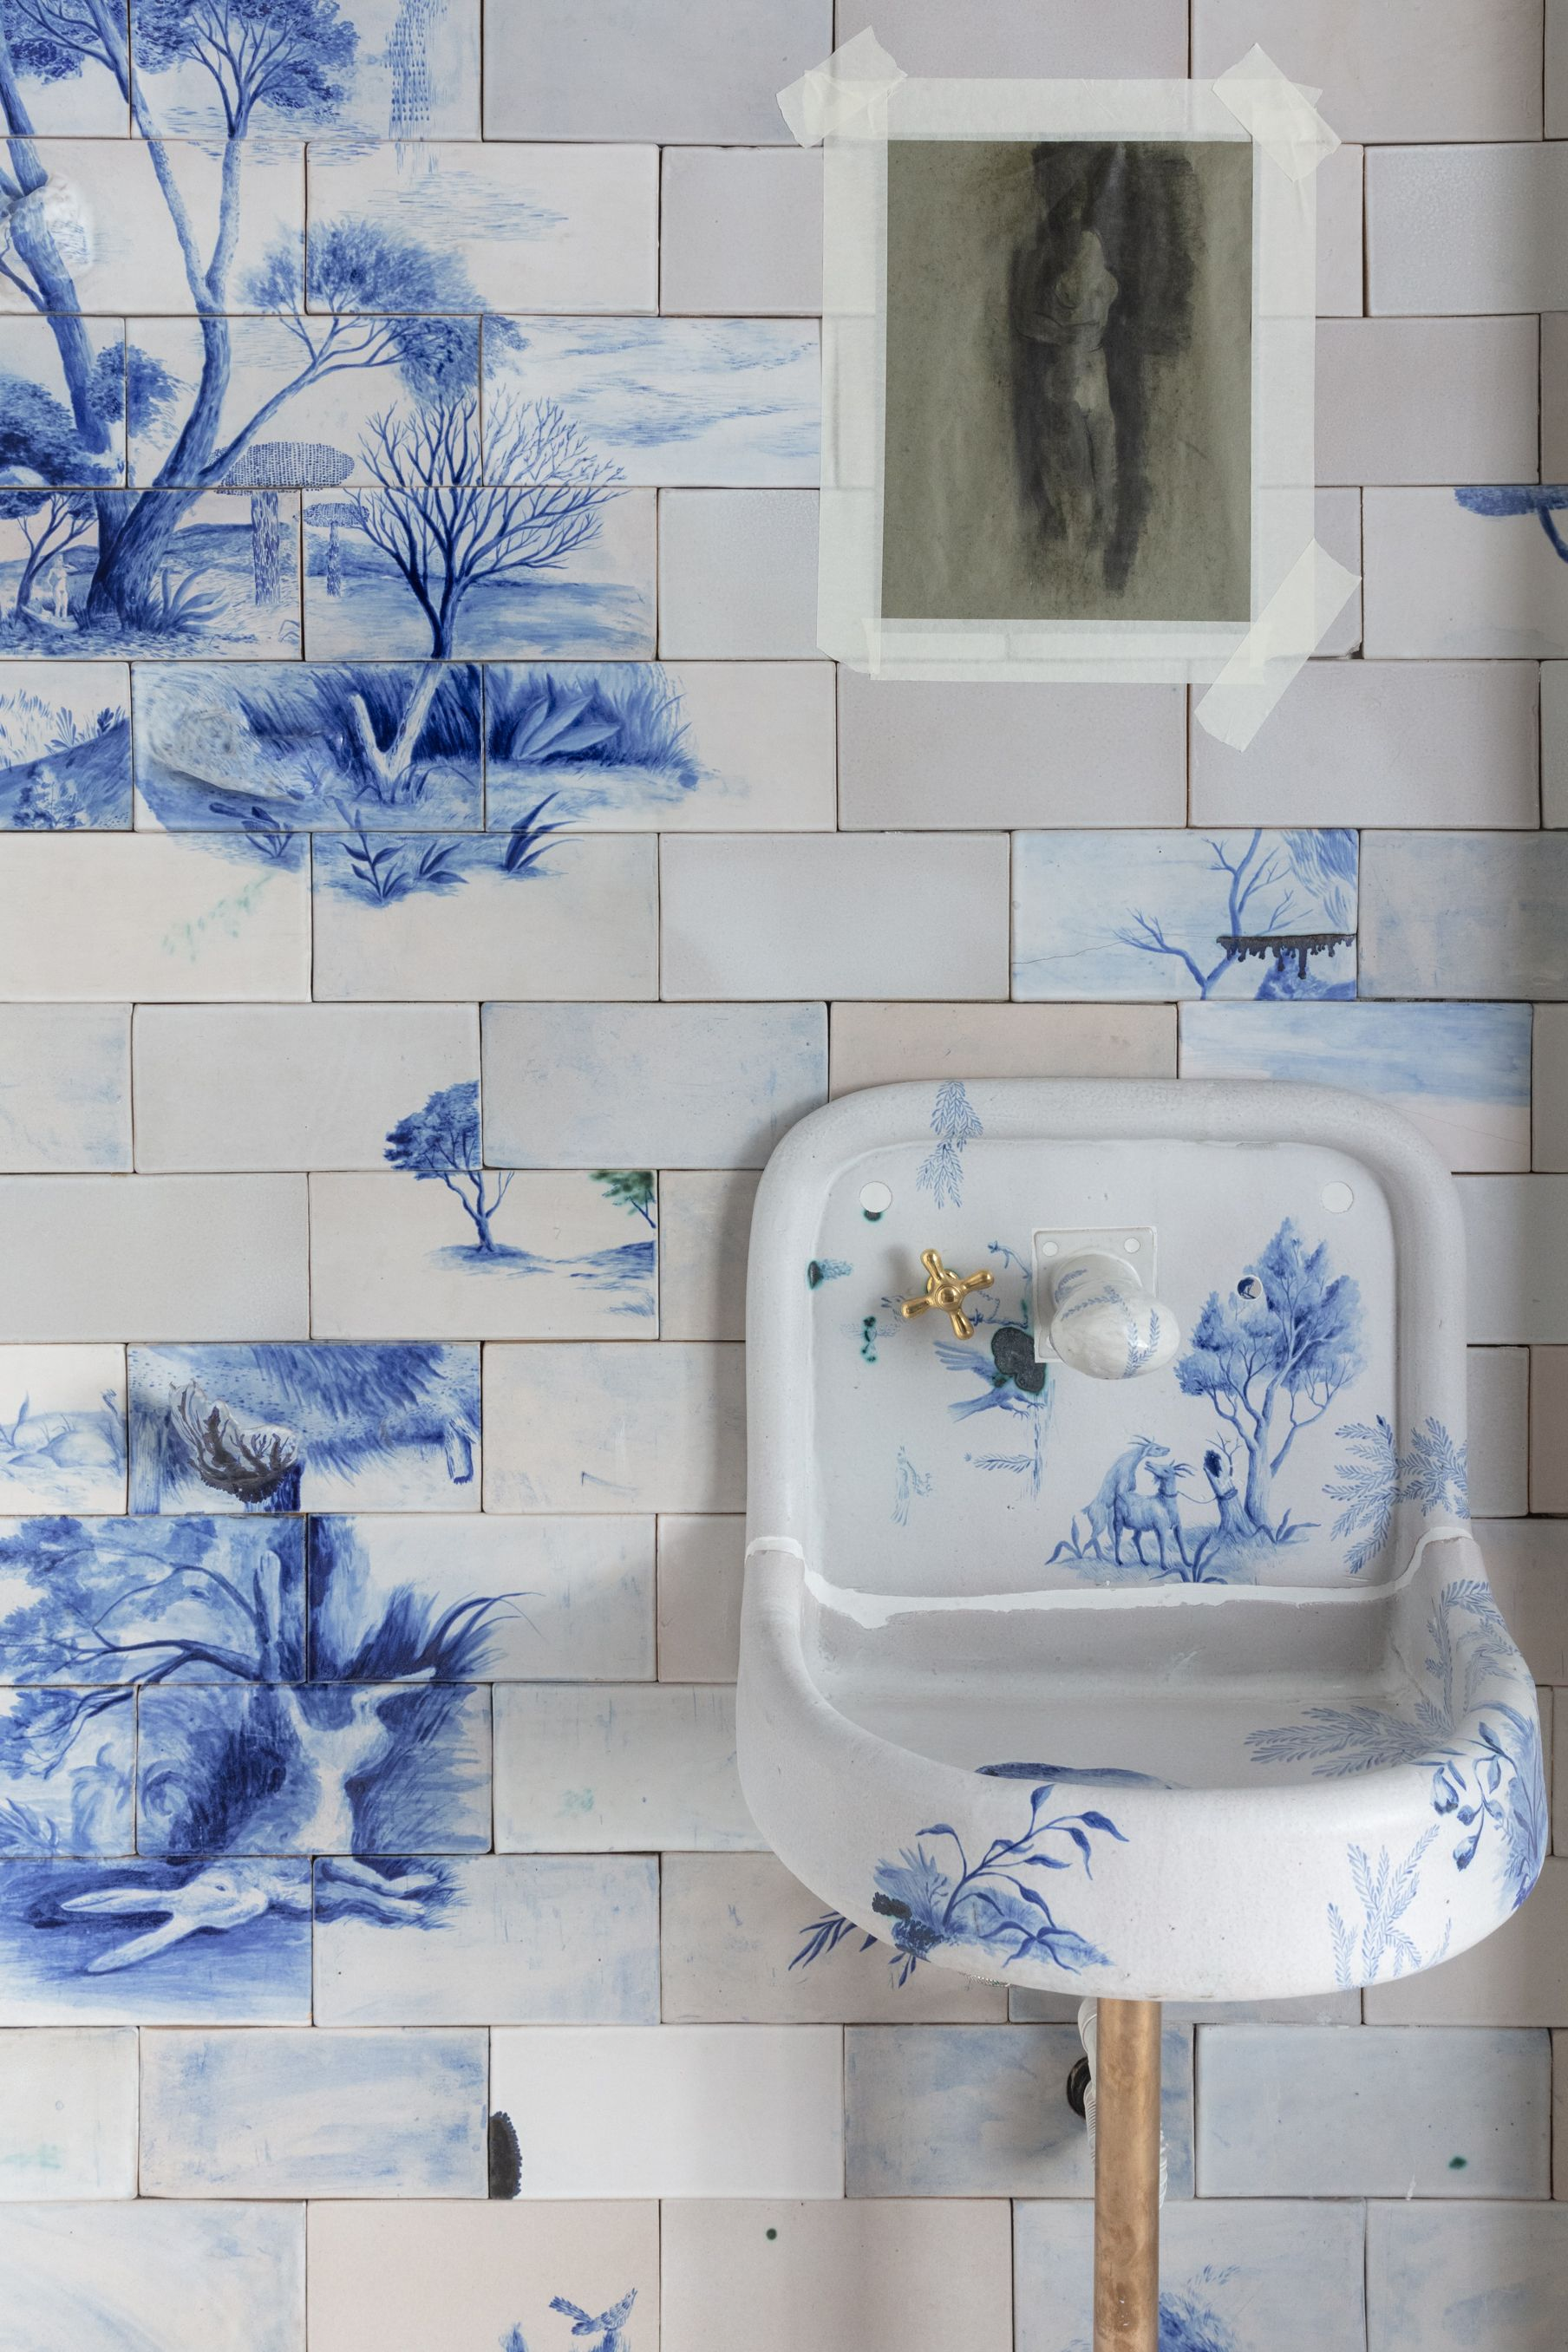 Hand-painted toile bathroom tile set every designer's heart (and their Instagrams) ablaze at New York and Milan – based design studio BDDW's showroom.